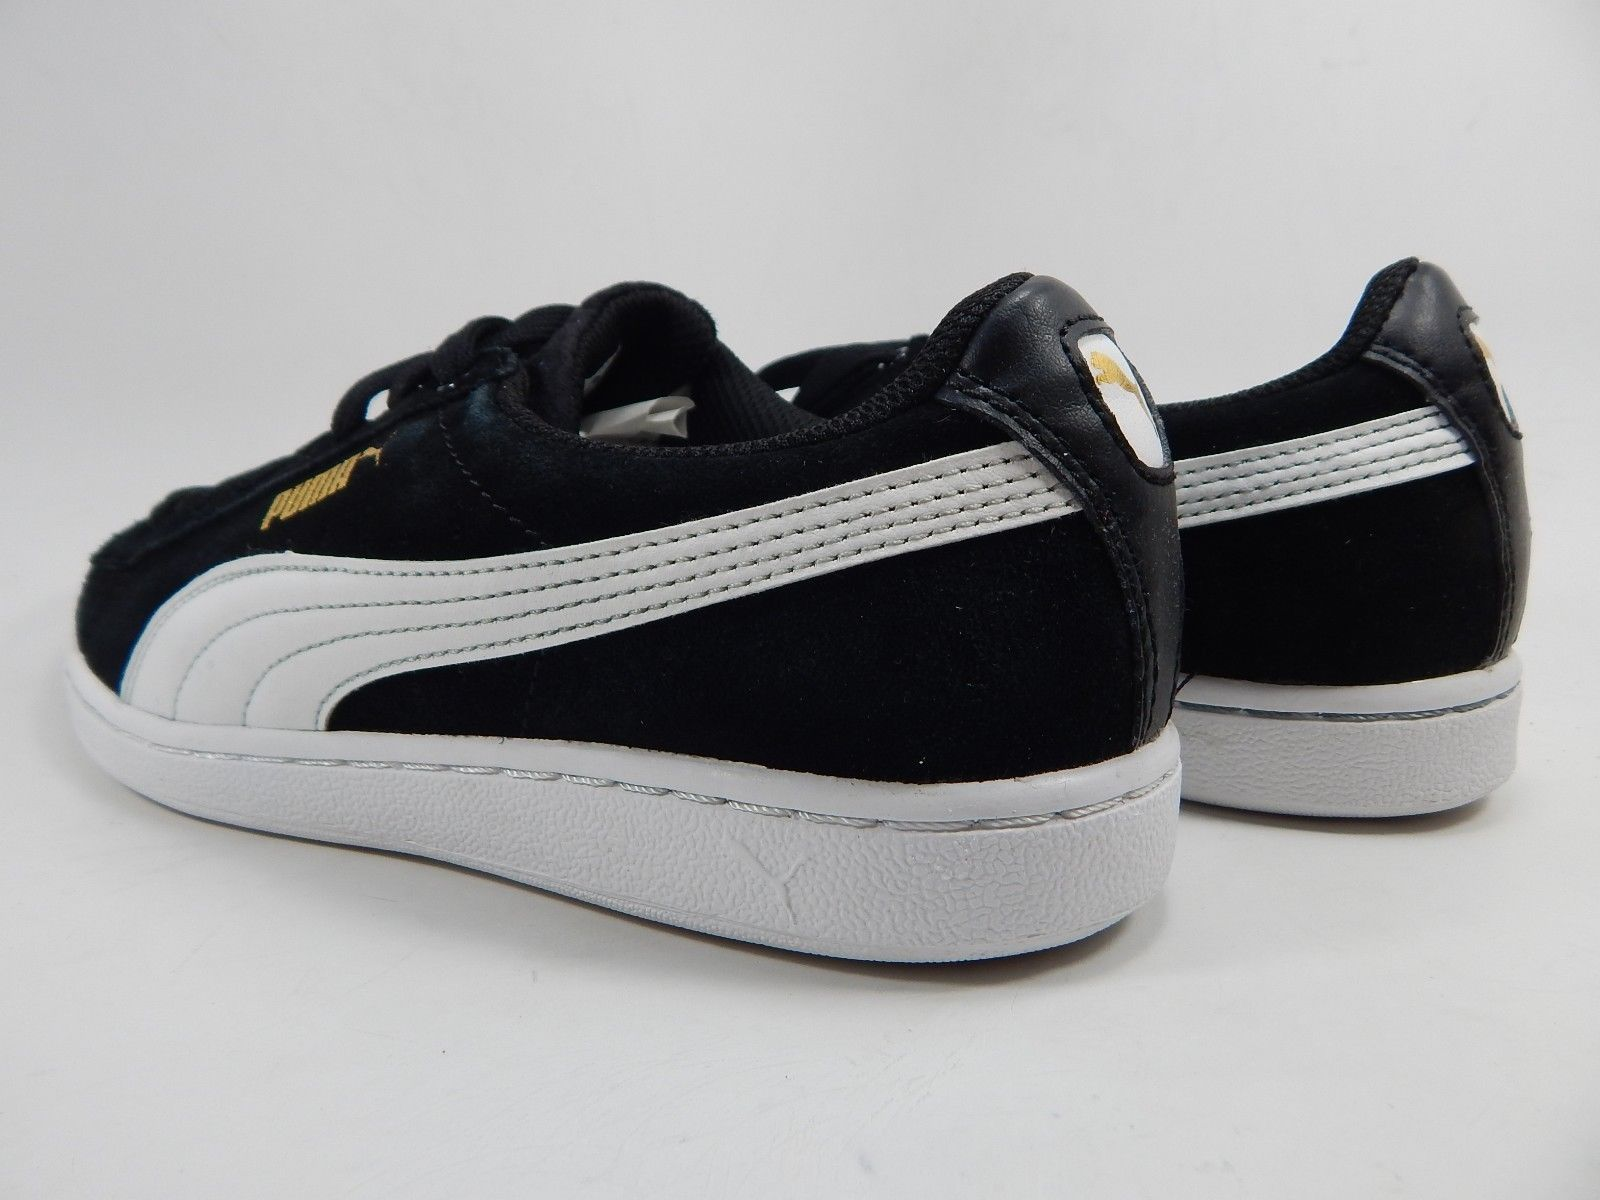 Puma Vikki Softfoam Women's Athletic Sneakers Size US 8.5 M (B) EU 39 Black